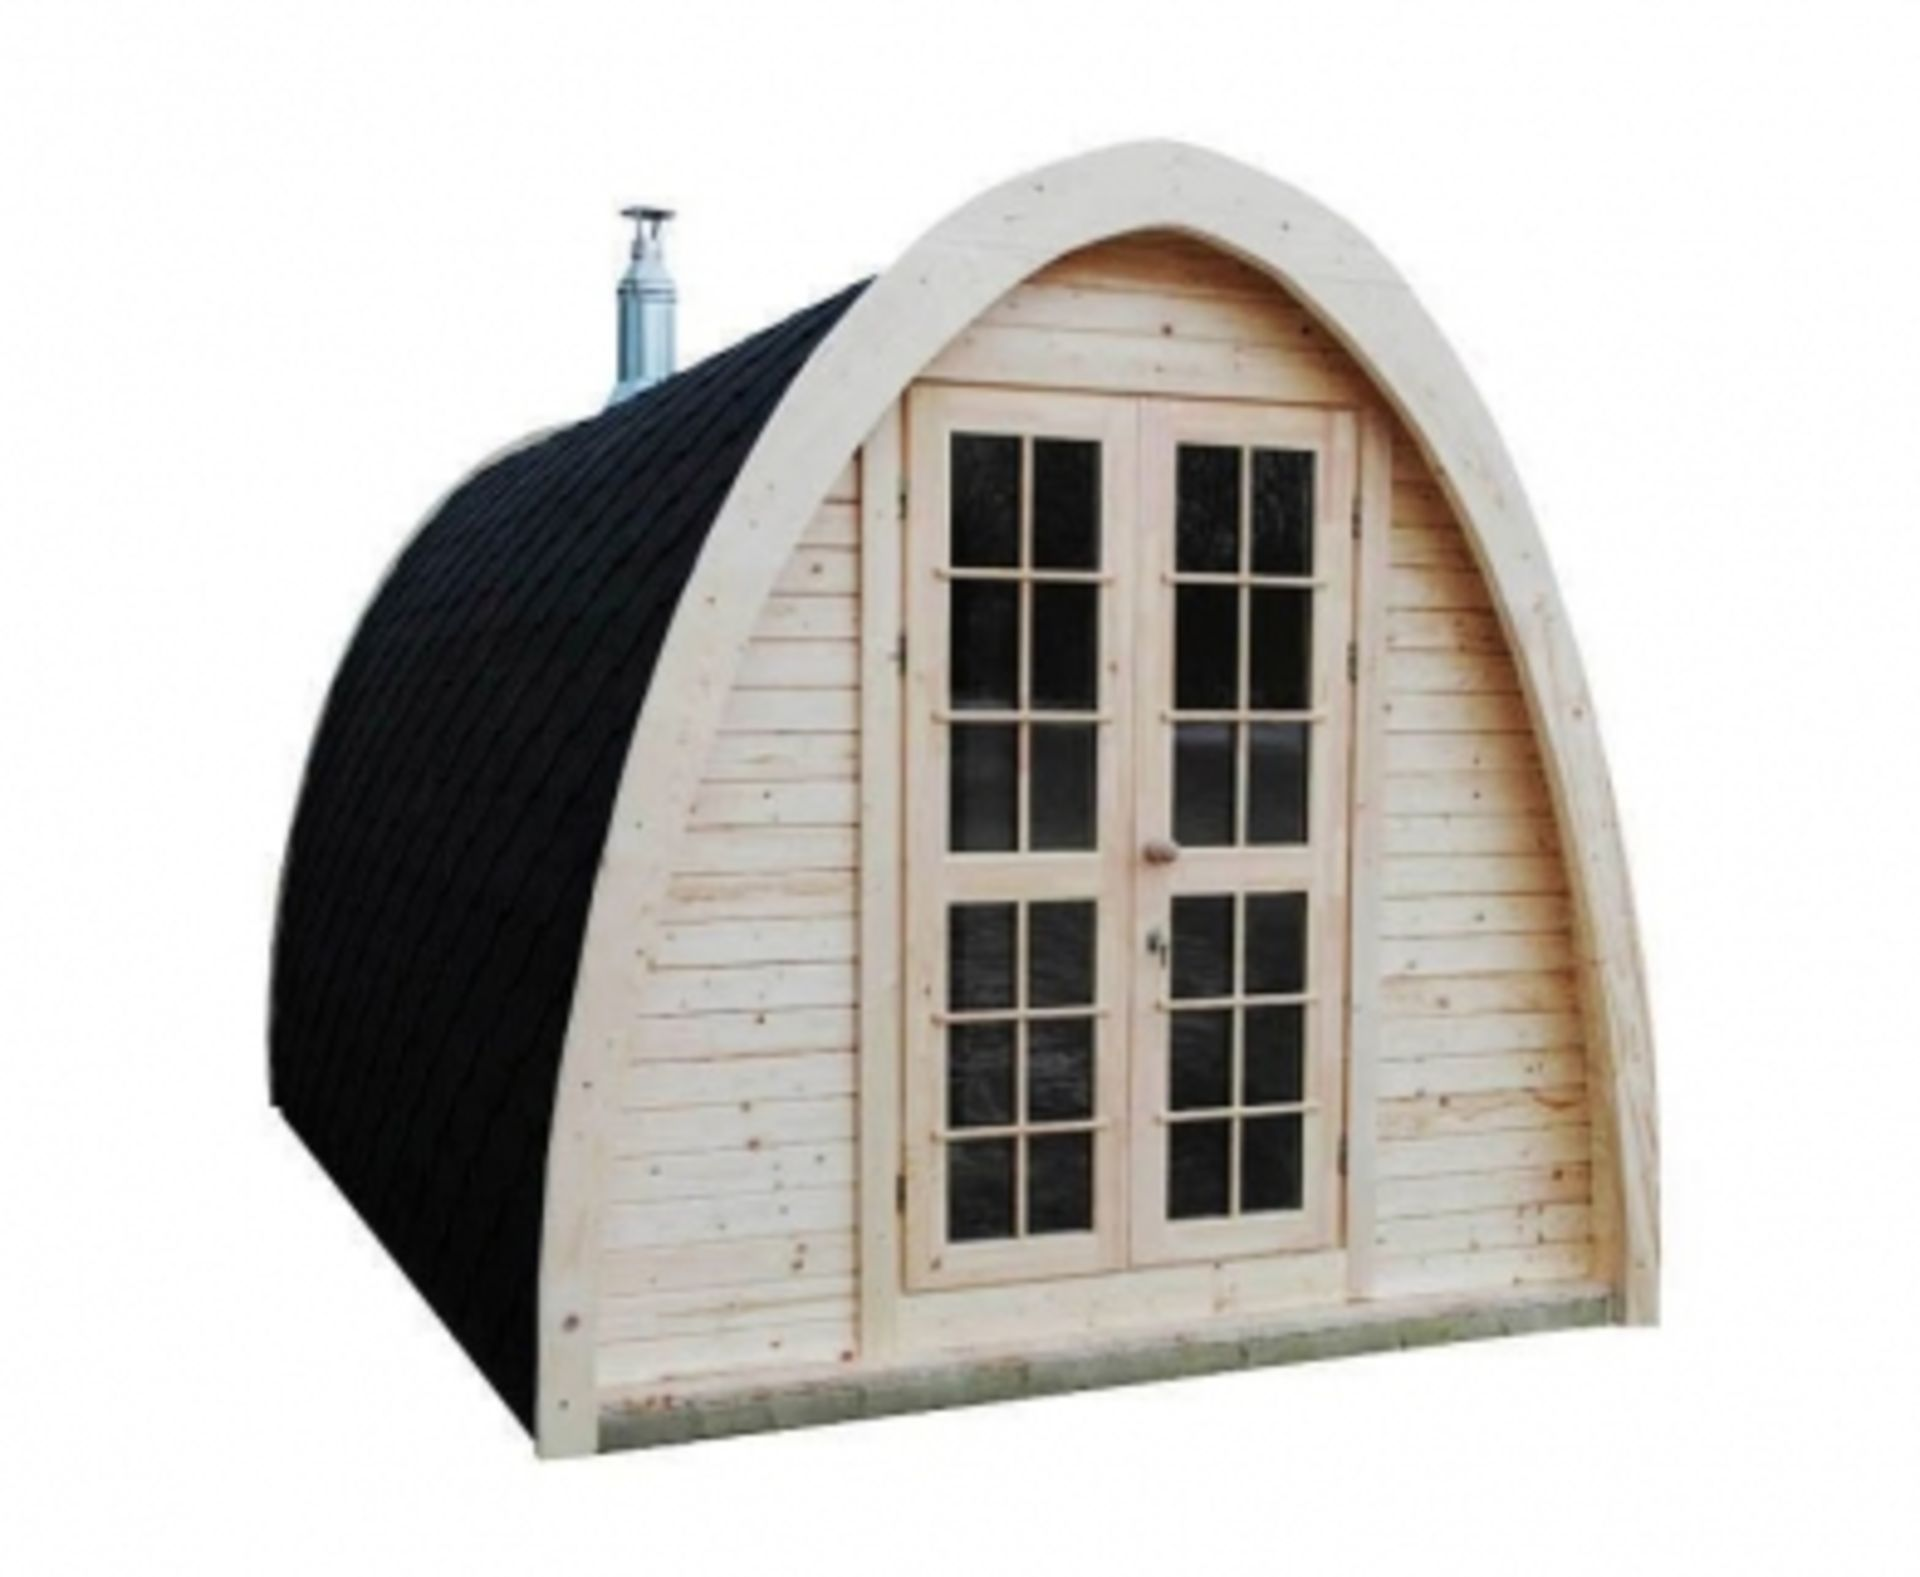 Lot 19021 - + VAT Brand New 2.4 x 2.3m Sauna Pod From Thermo Wood - Roof Covered With Bitumen Shingles - Two